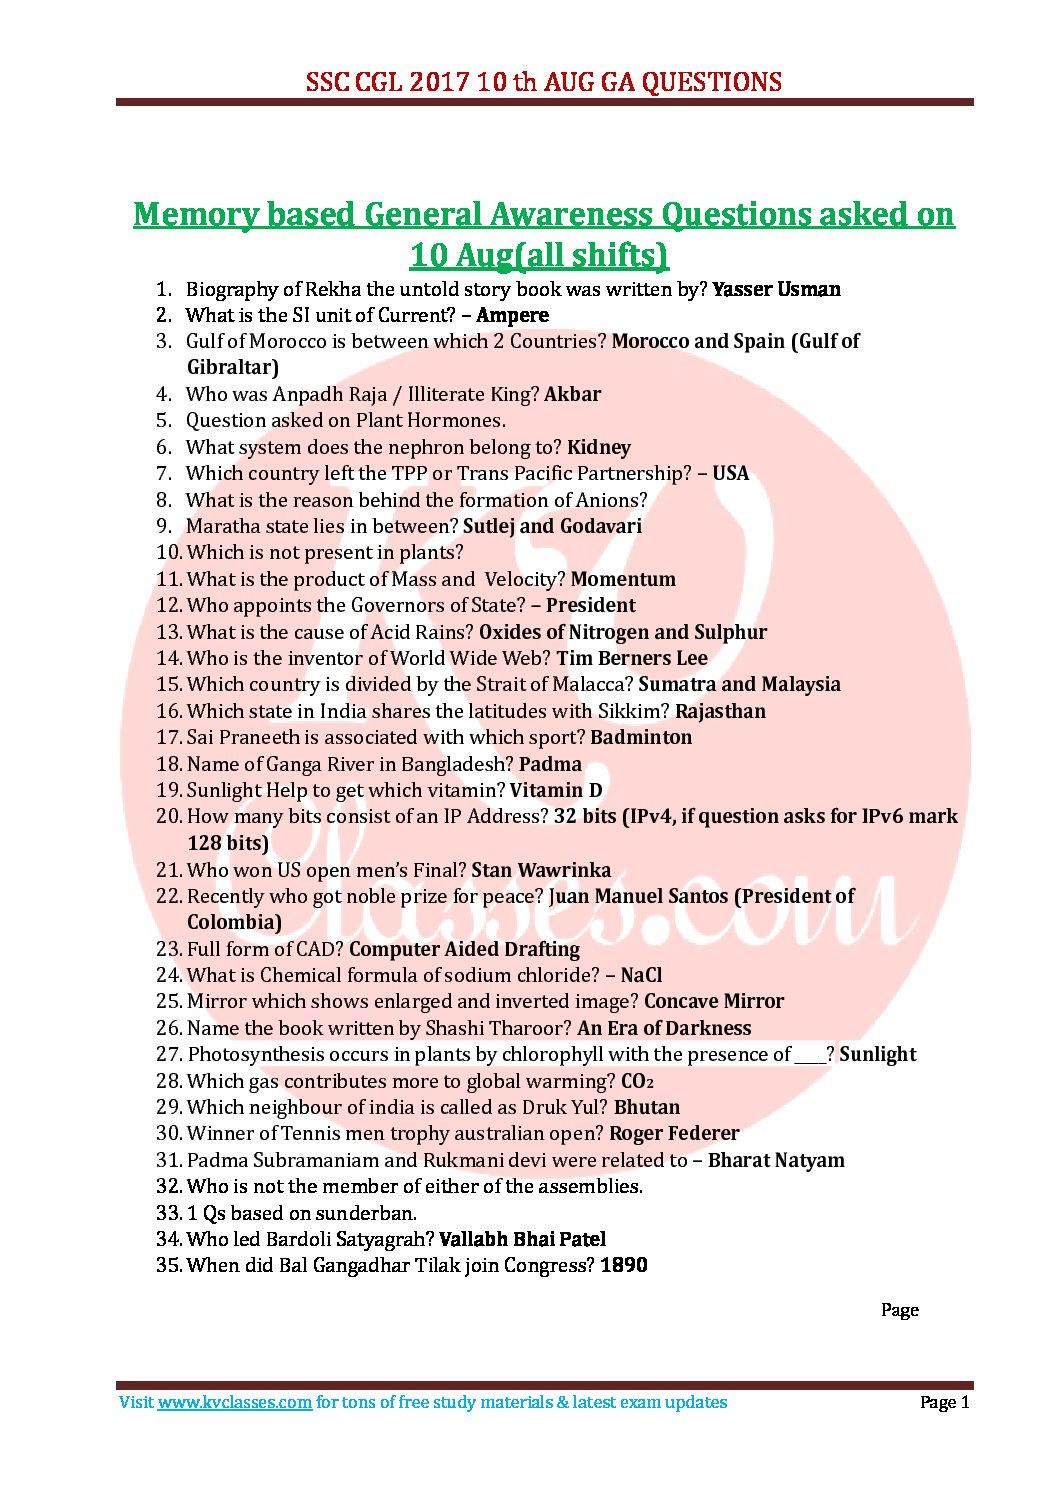 SSC CGL 2017 10 Aug all Shifts memory based GA pdf download